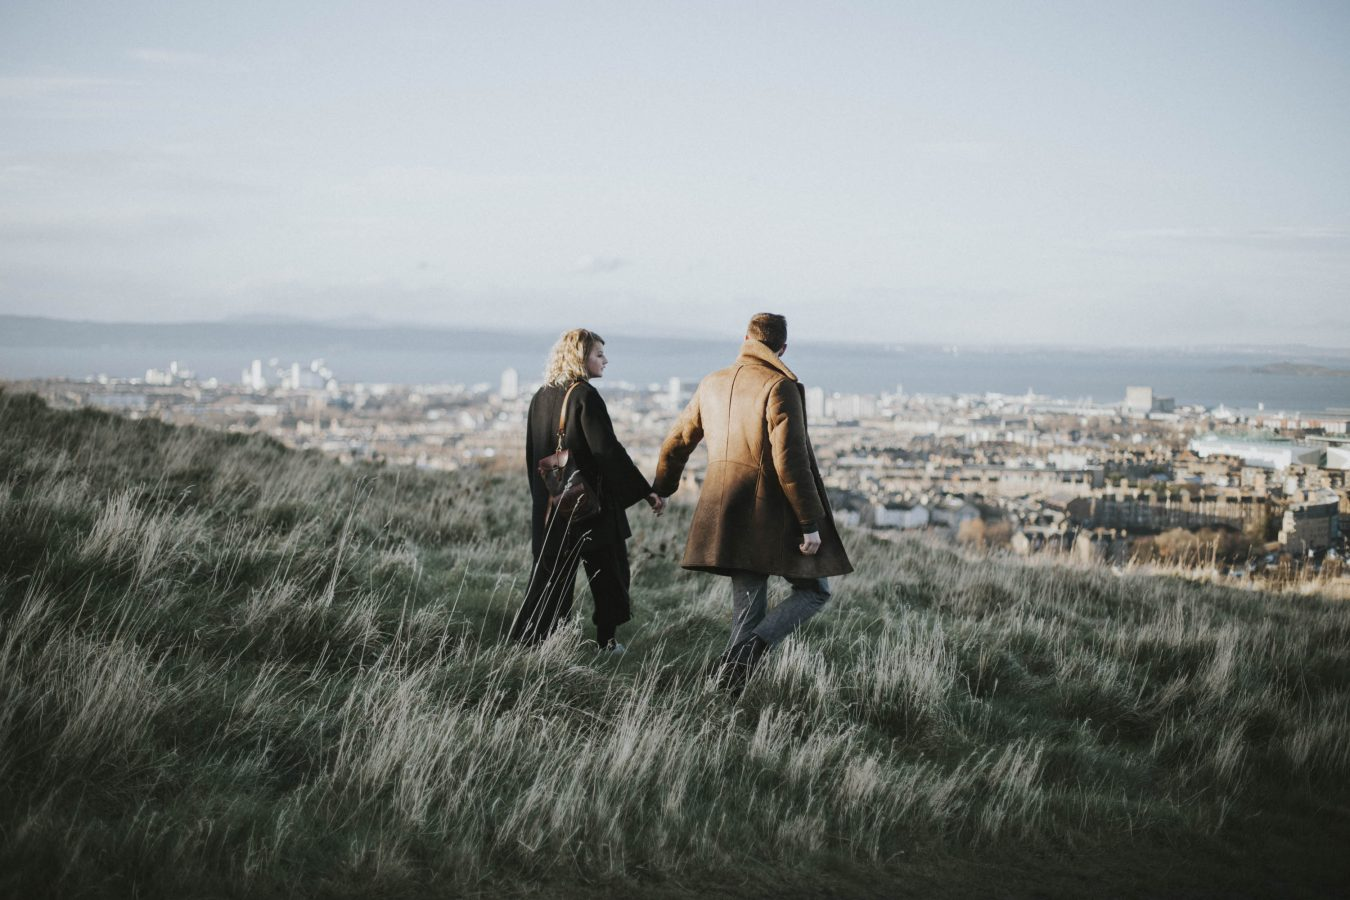 Edinburgh Couple Photoshoot in Holyrood Park | Potrait Session by Ceranna Photography | Edinburgh Wedding and Elopement Photographer | Scottish nature